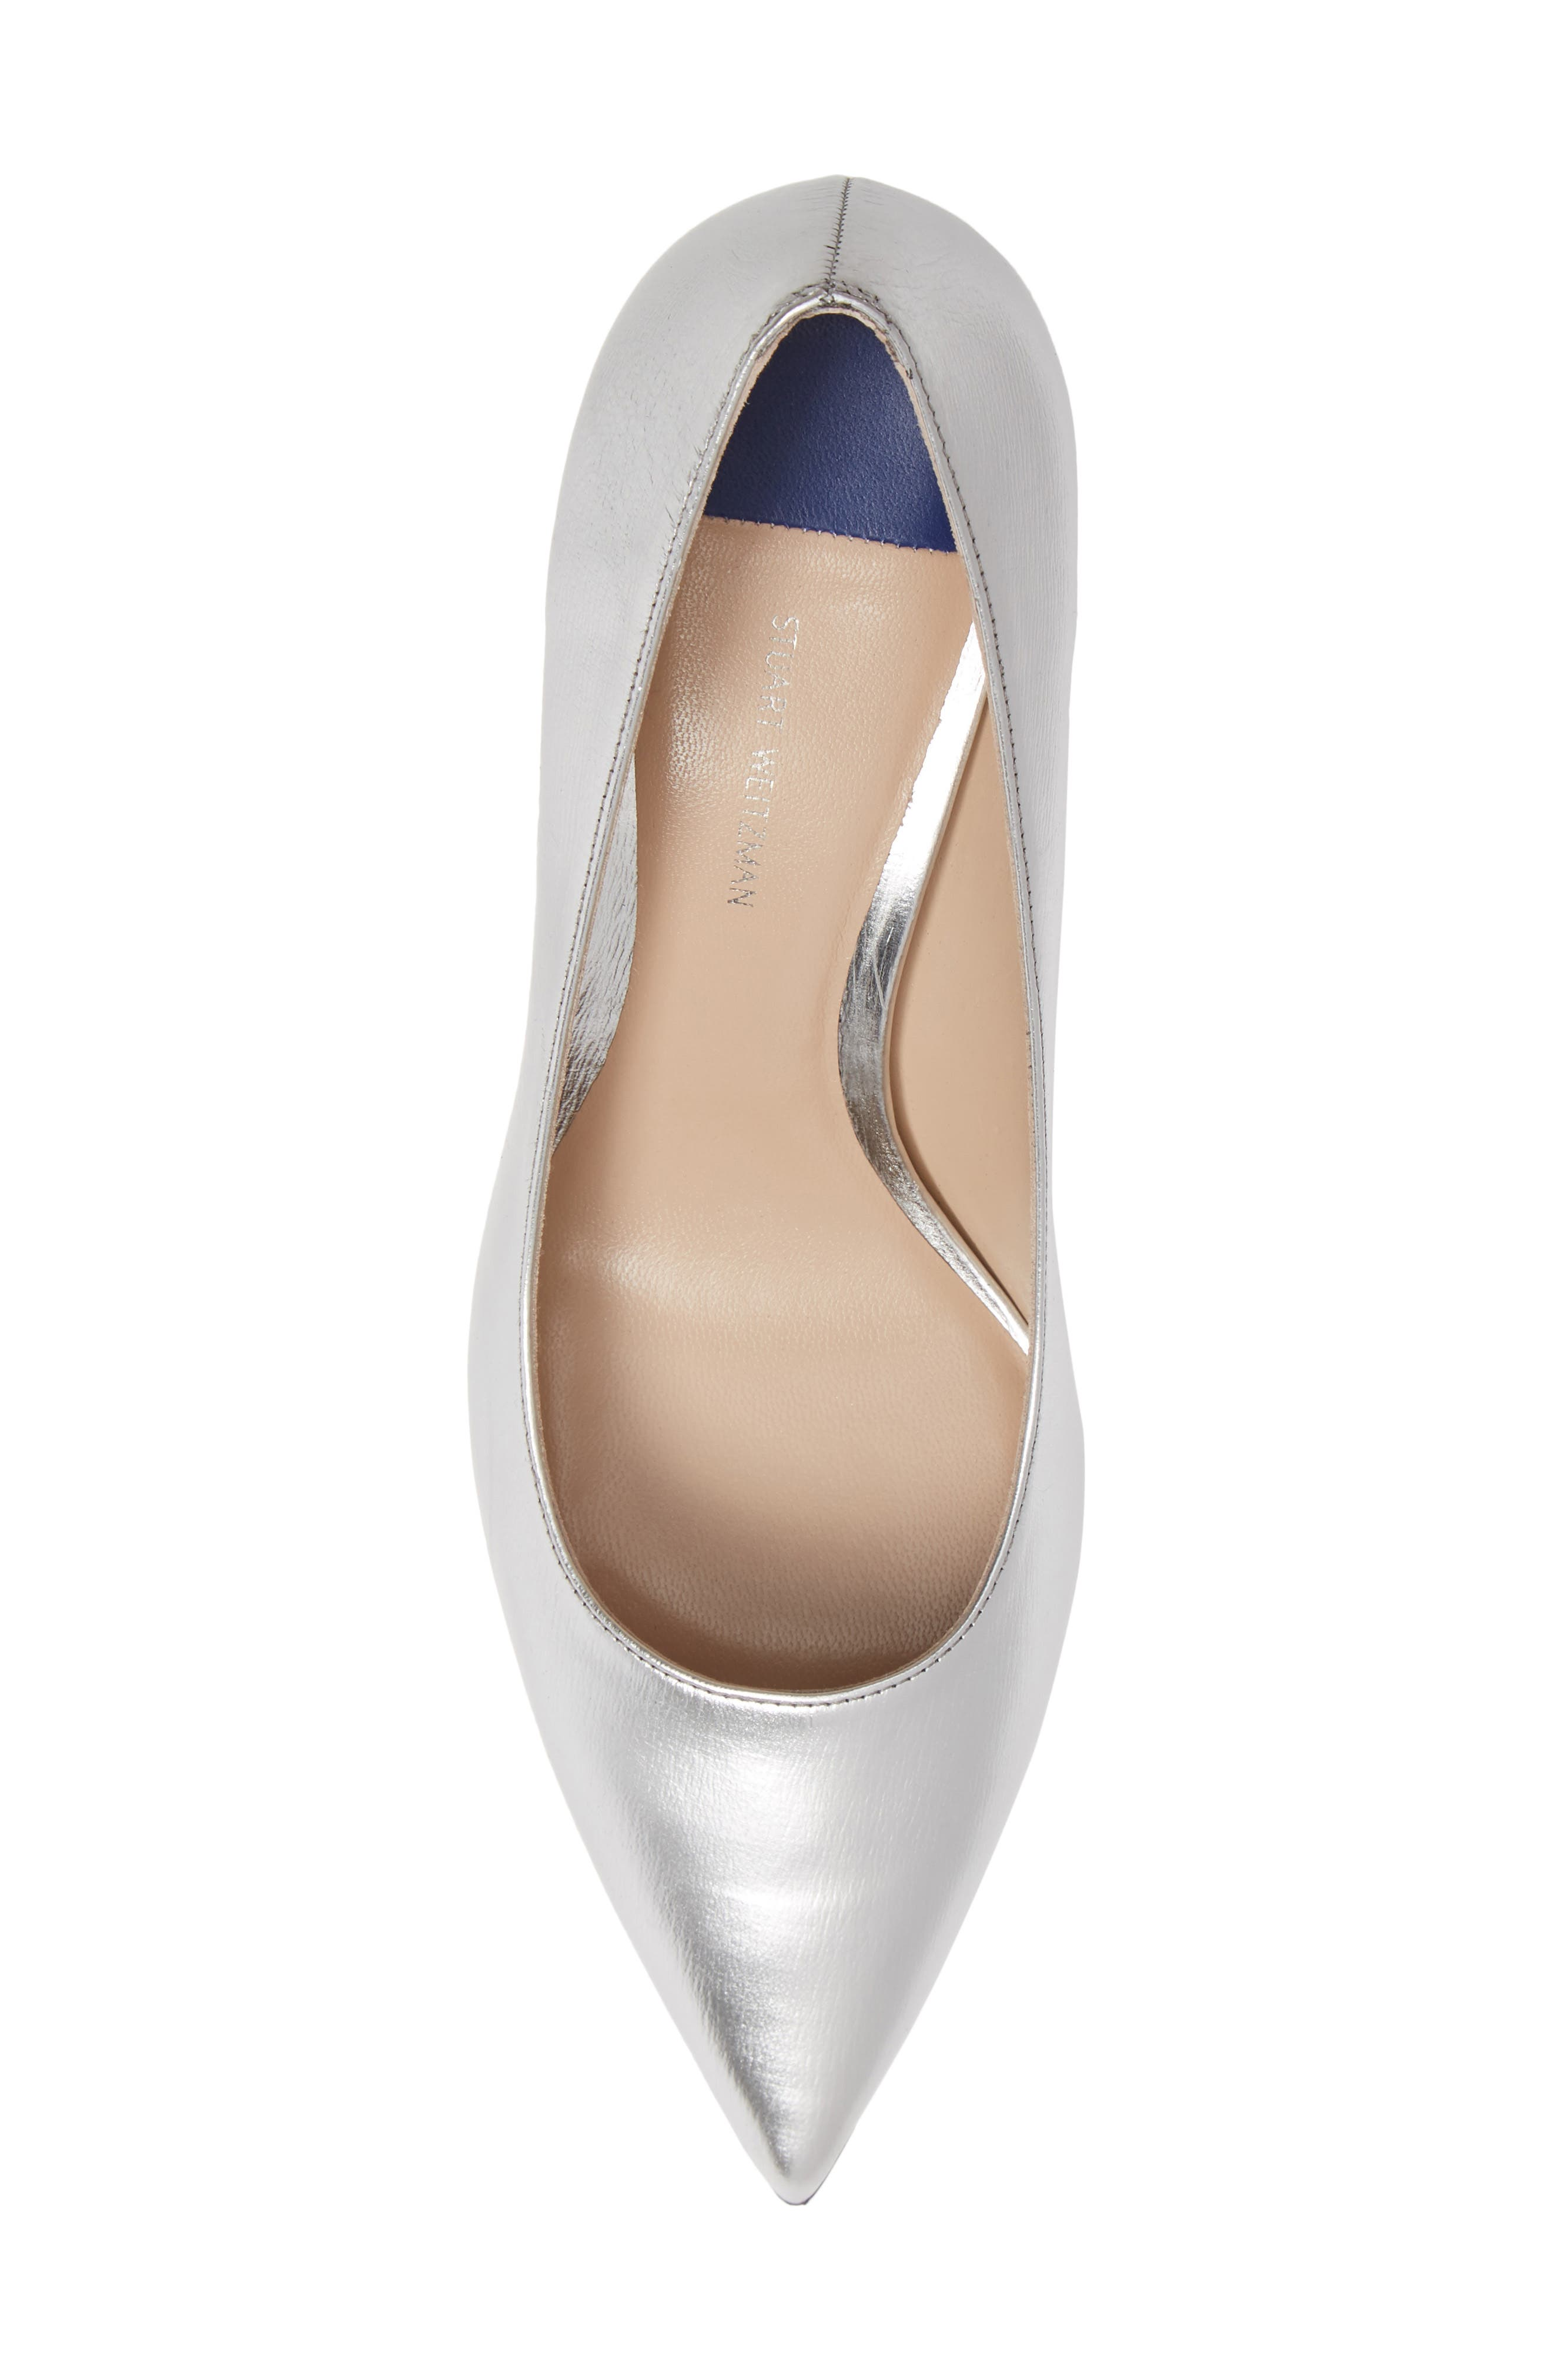 Tippi 70 Pointy Toe Pump,                             Alternate thumbnail 5, color,                             SILVER VENICE